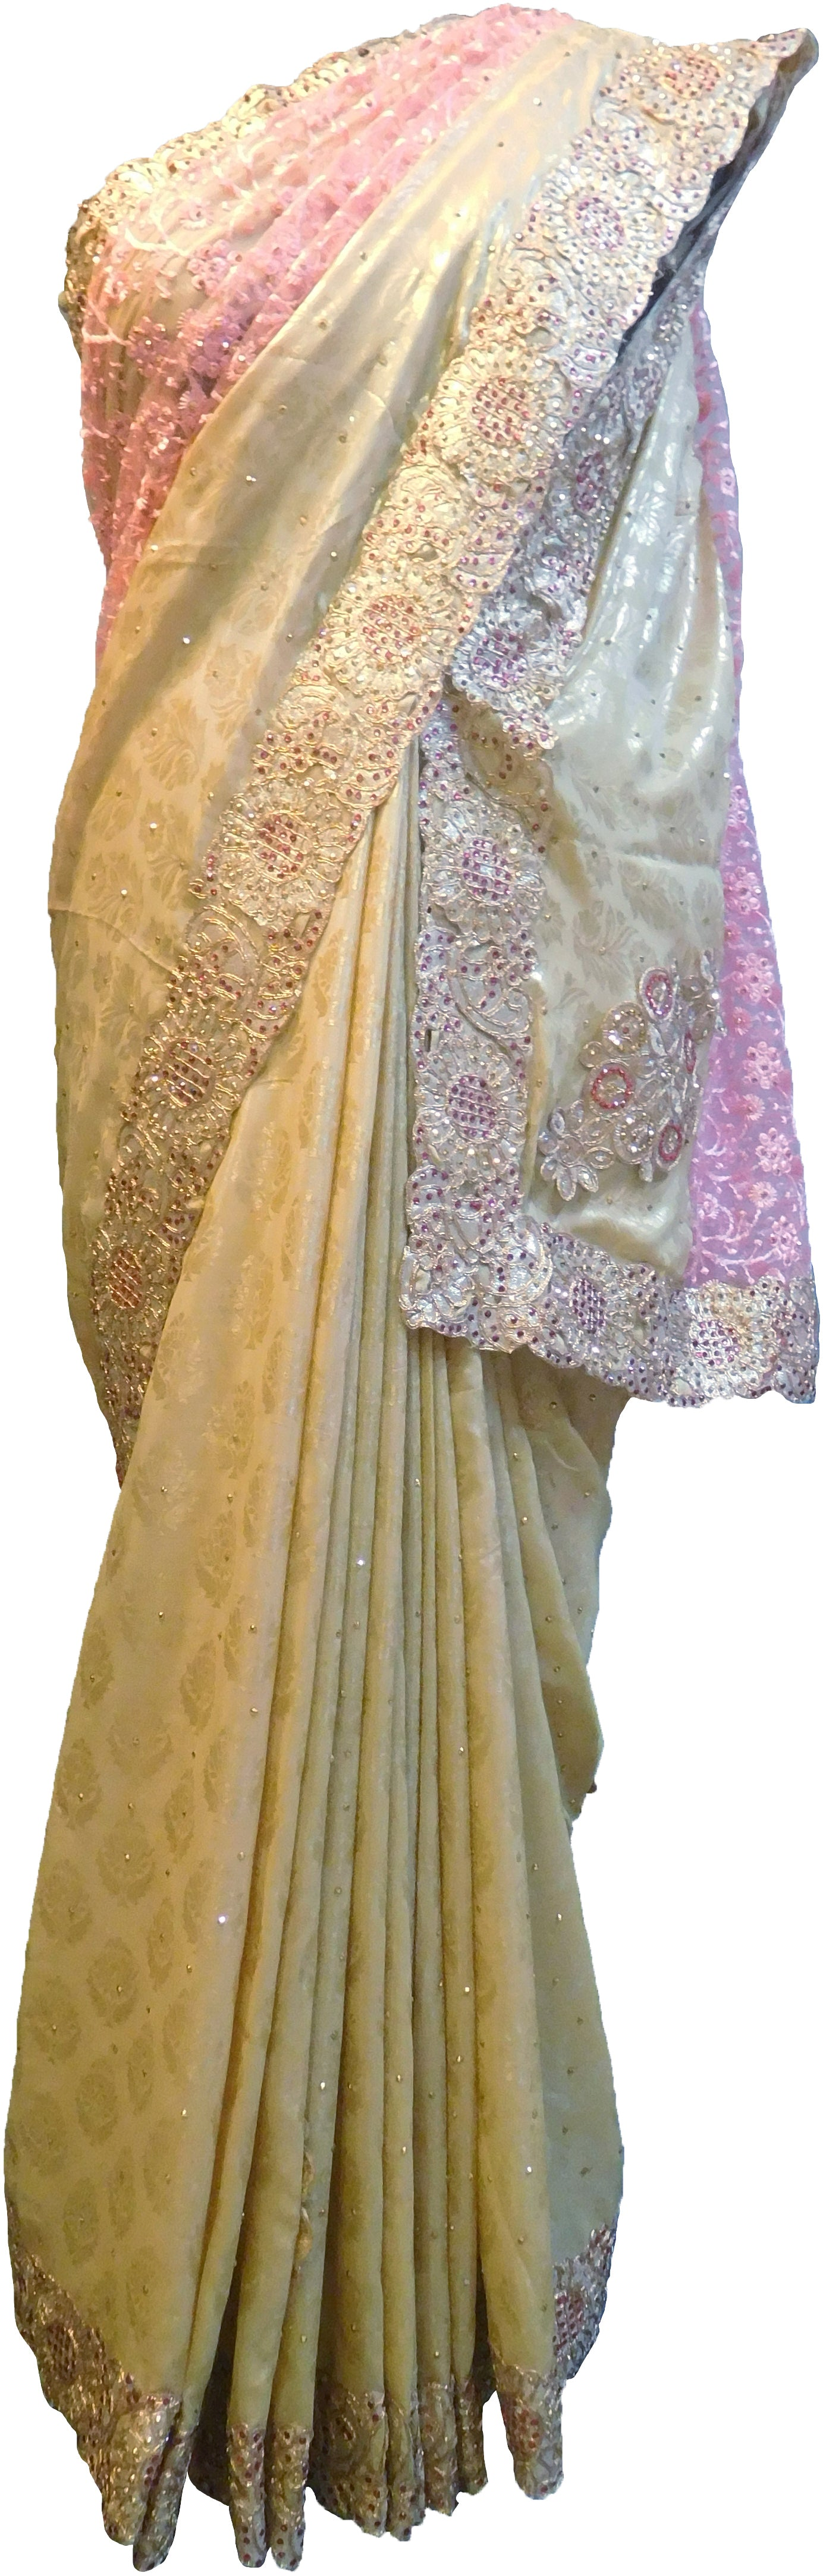 SMSAREE Golden & Pink Designer Wedding Partywear Georgette Stone Thread Beads & Zari Hand Embroidery Work Bridal Saree Sari With Blouse Piece F296